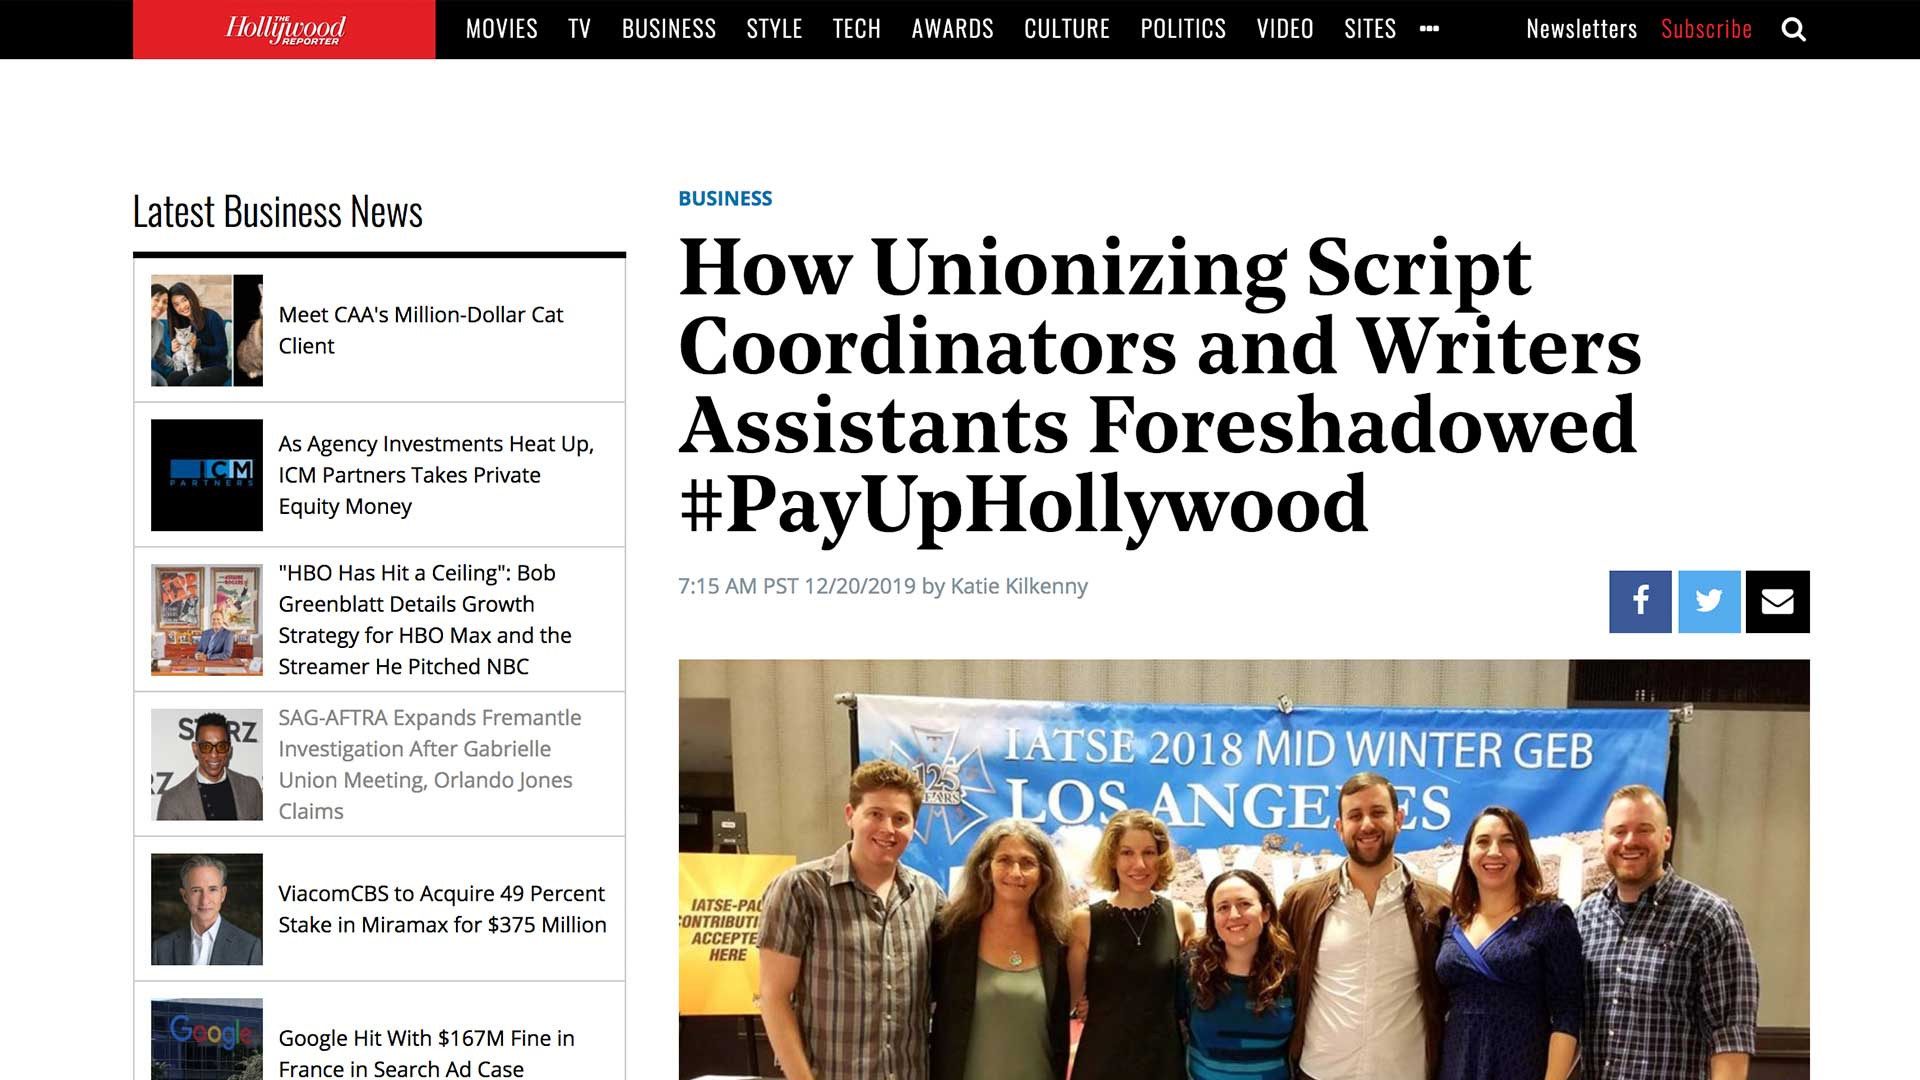 Fairness Rocks News How Unionizing Script Coordinators and Writers Assistants Foreshadowed #PayUpHollywood